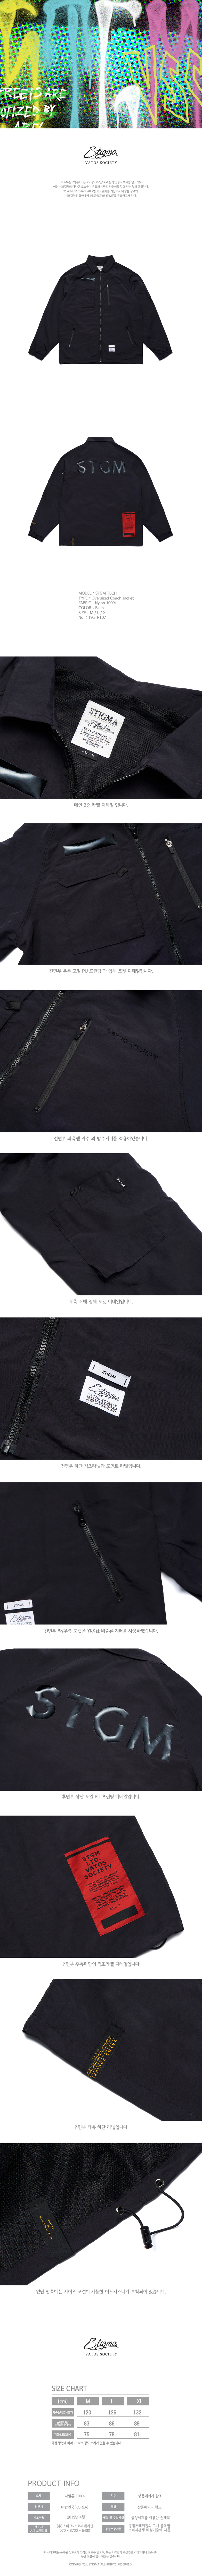 스티그마 STIGMA STGM TECH OVERSIZED COACH JACKET BLACK